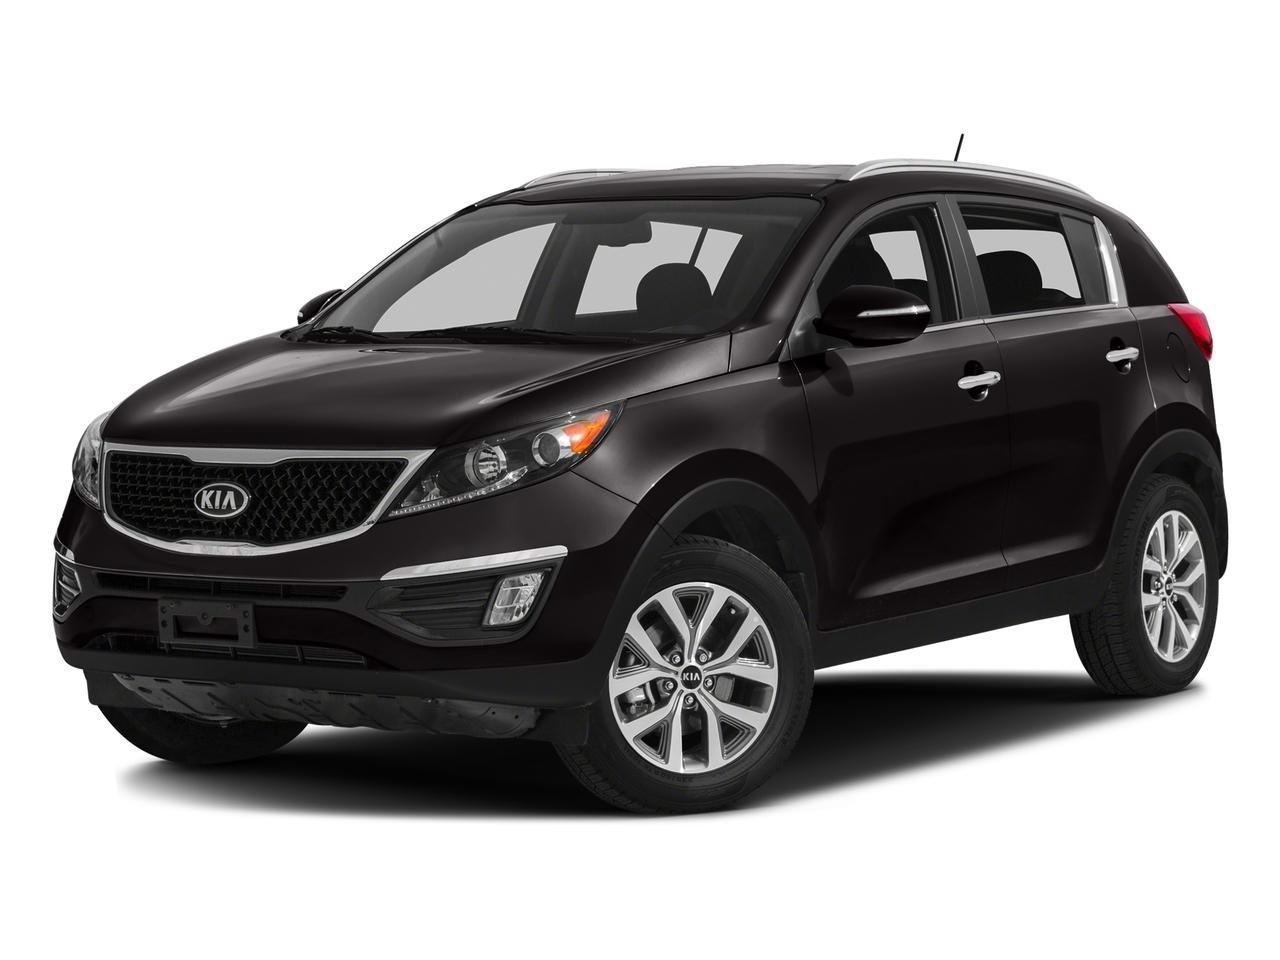 2016 Kia Sportage Vehicle Photo in Portland, OR 97225